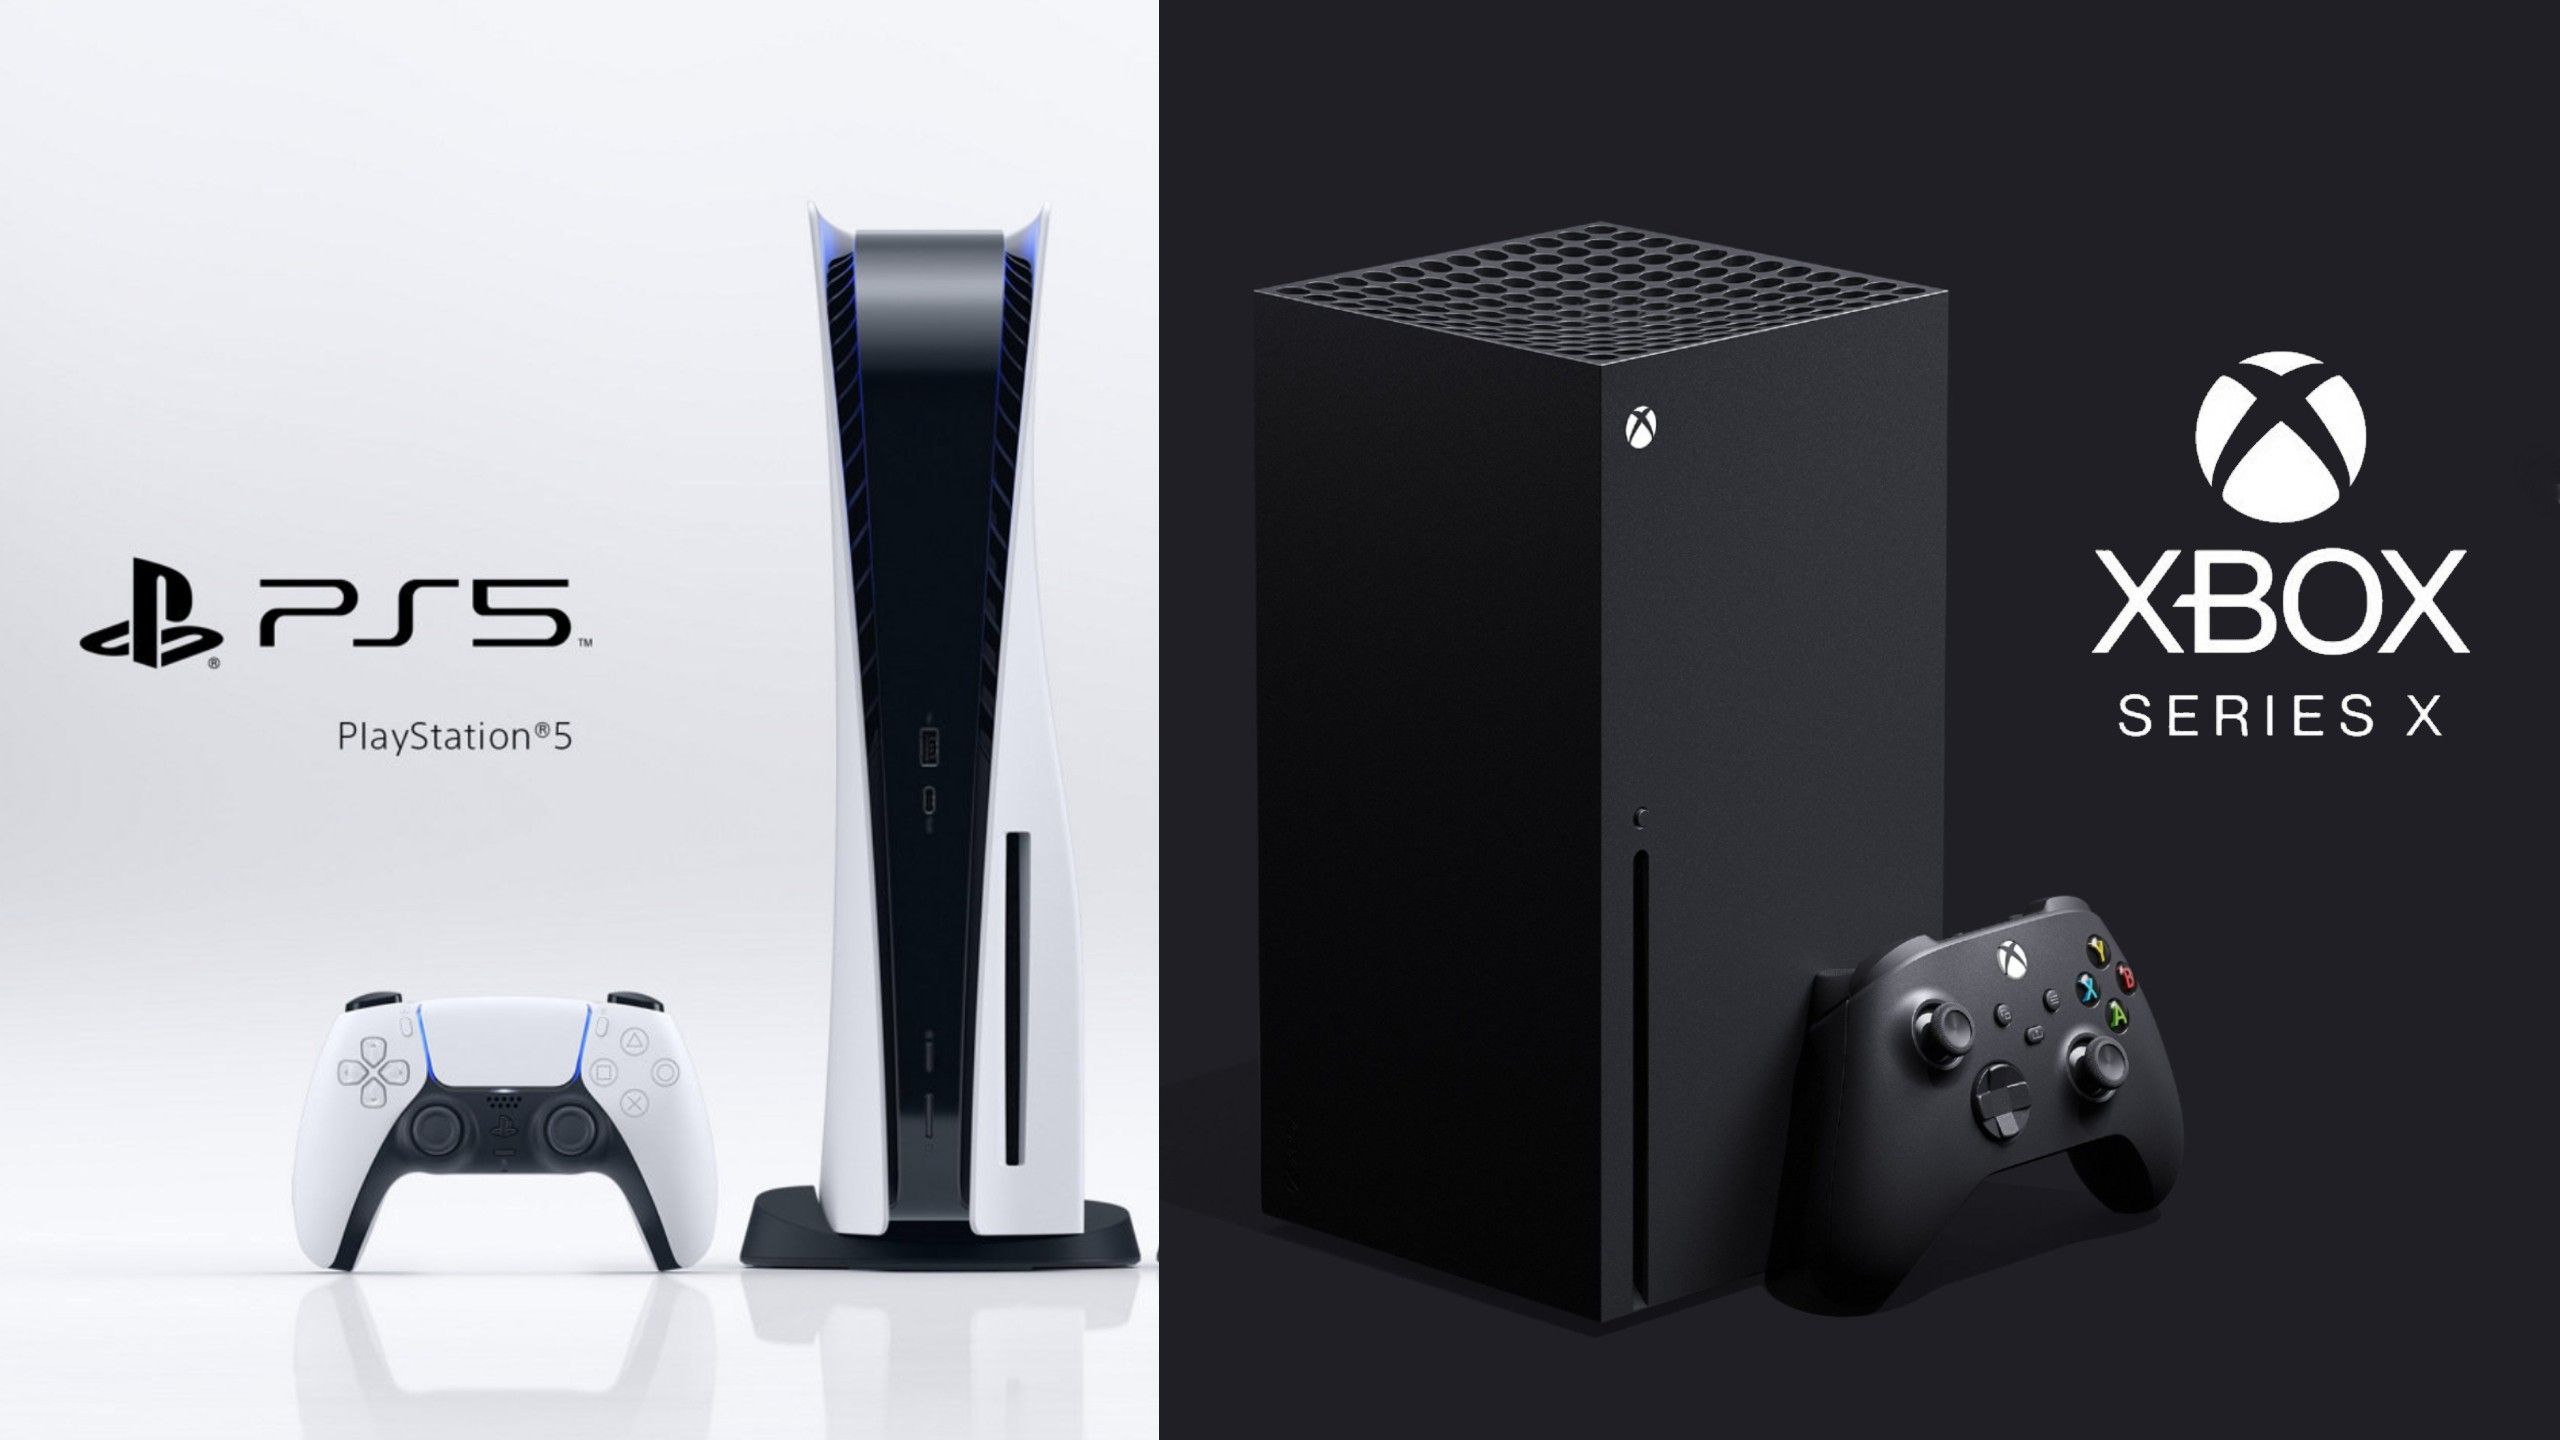 Ps5 Vs Xbox Series X Which One Is A Better Choice For You In 2020 Xbox Playstation Playstation 5